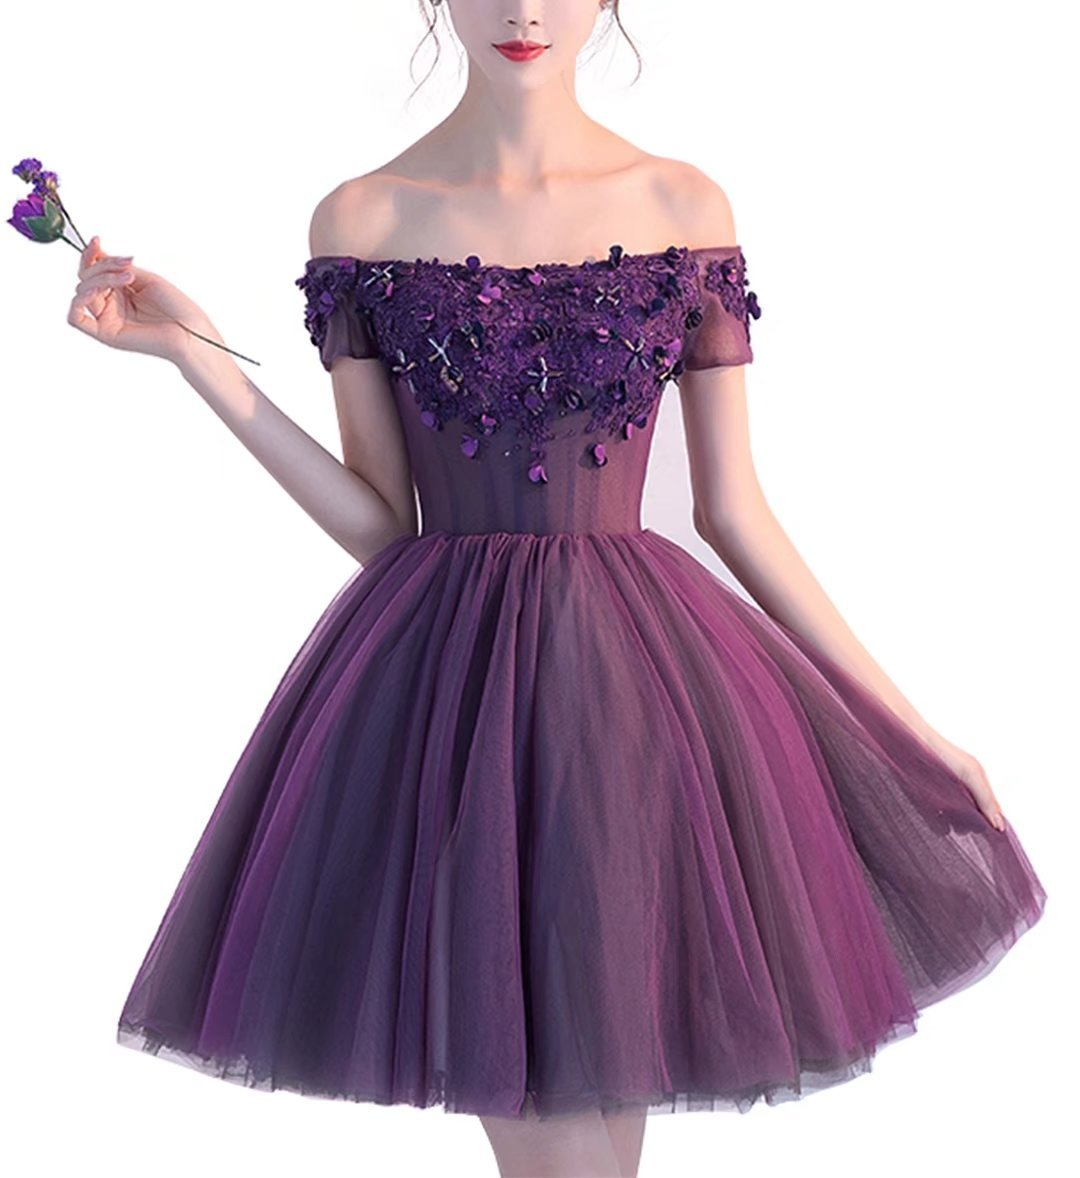 c75a24dc2f4 LanierWedding Short Homecoming Dresses Floral Off Shoulder Lace Up Prom  Party Dresses 2017 Grape Size 4